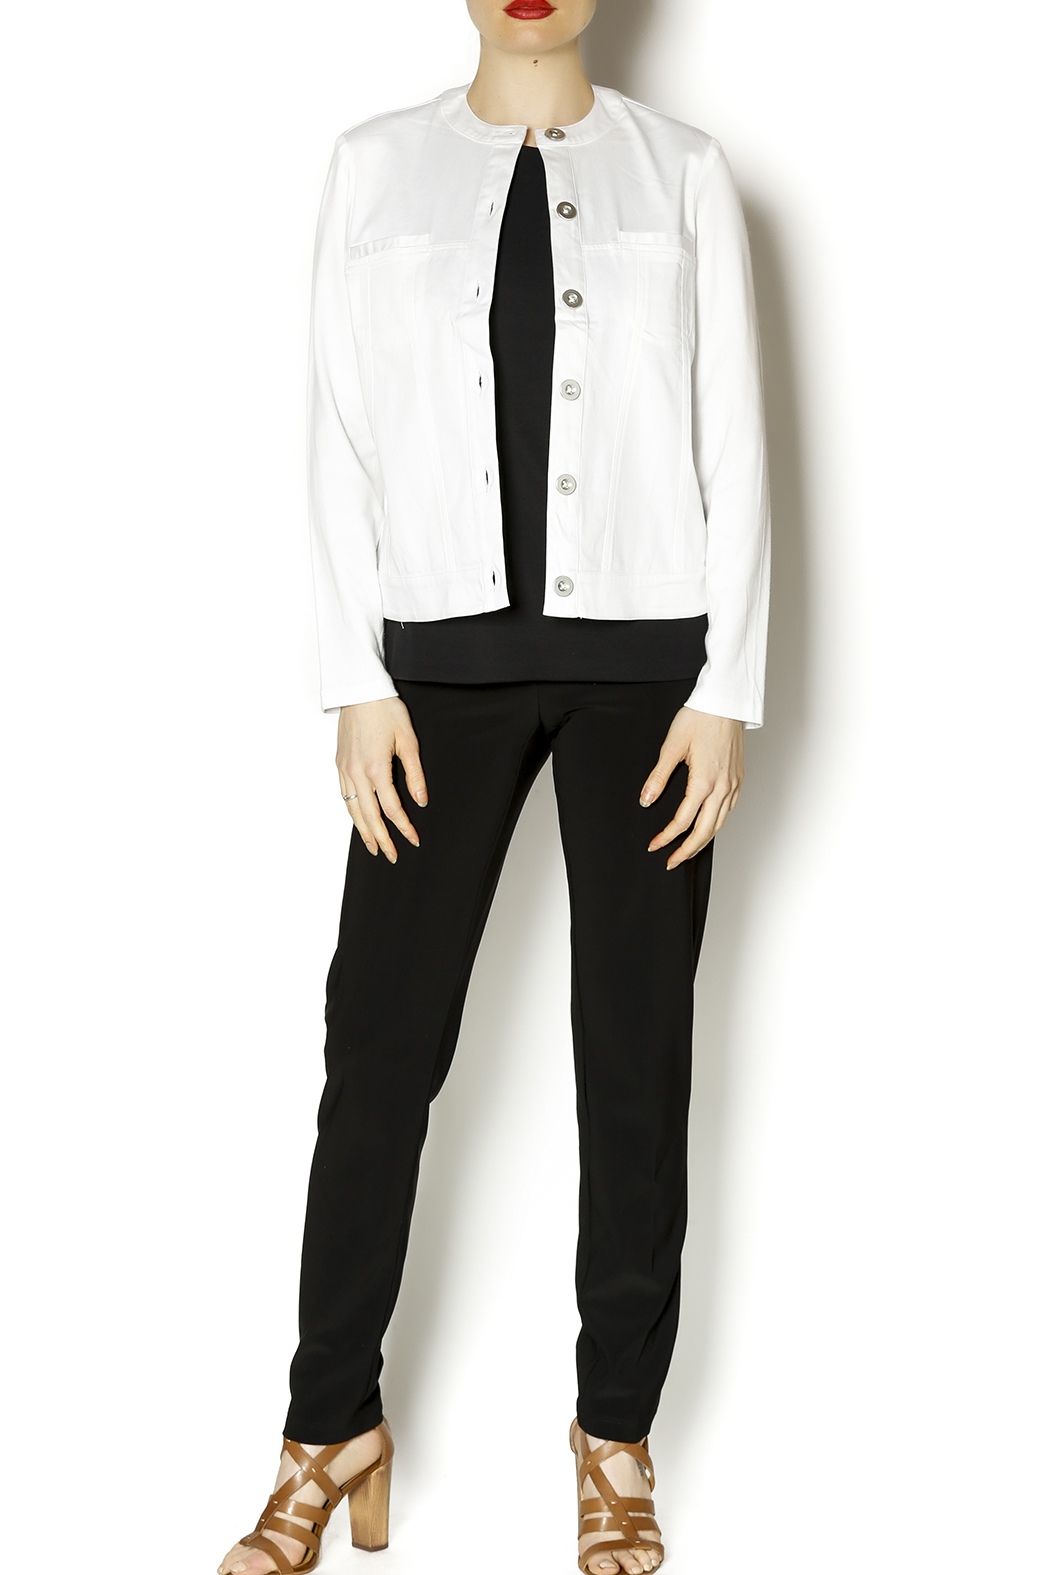 Robert Kitchen White Denim Style Jacket From New York By Scandia House Shoptiques